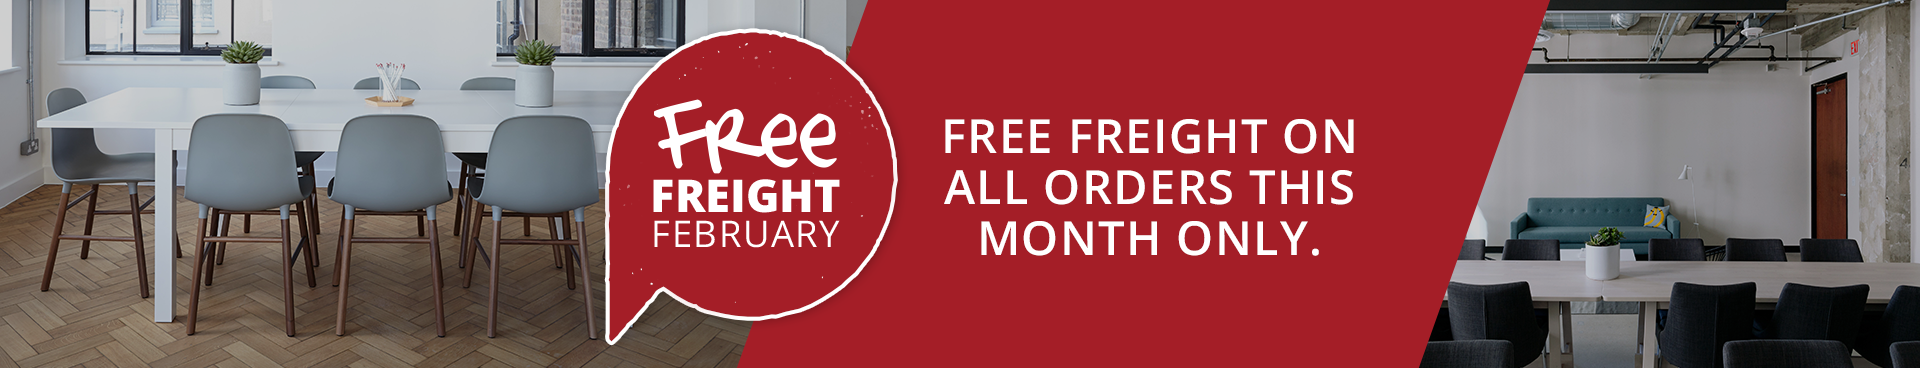 Free Freight February